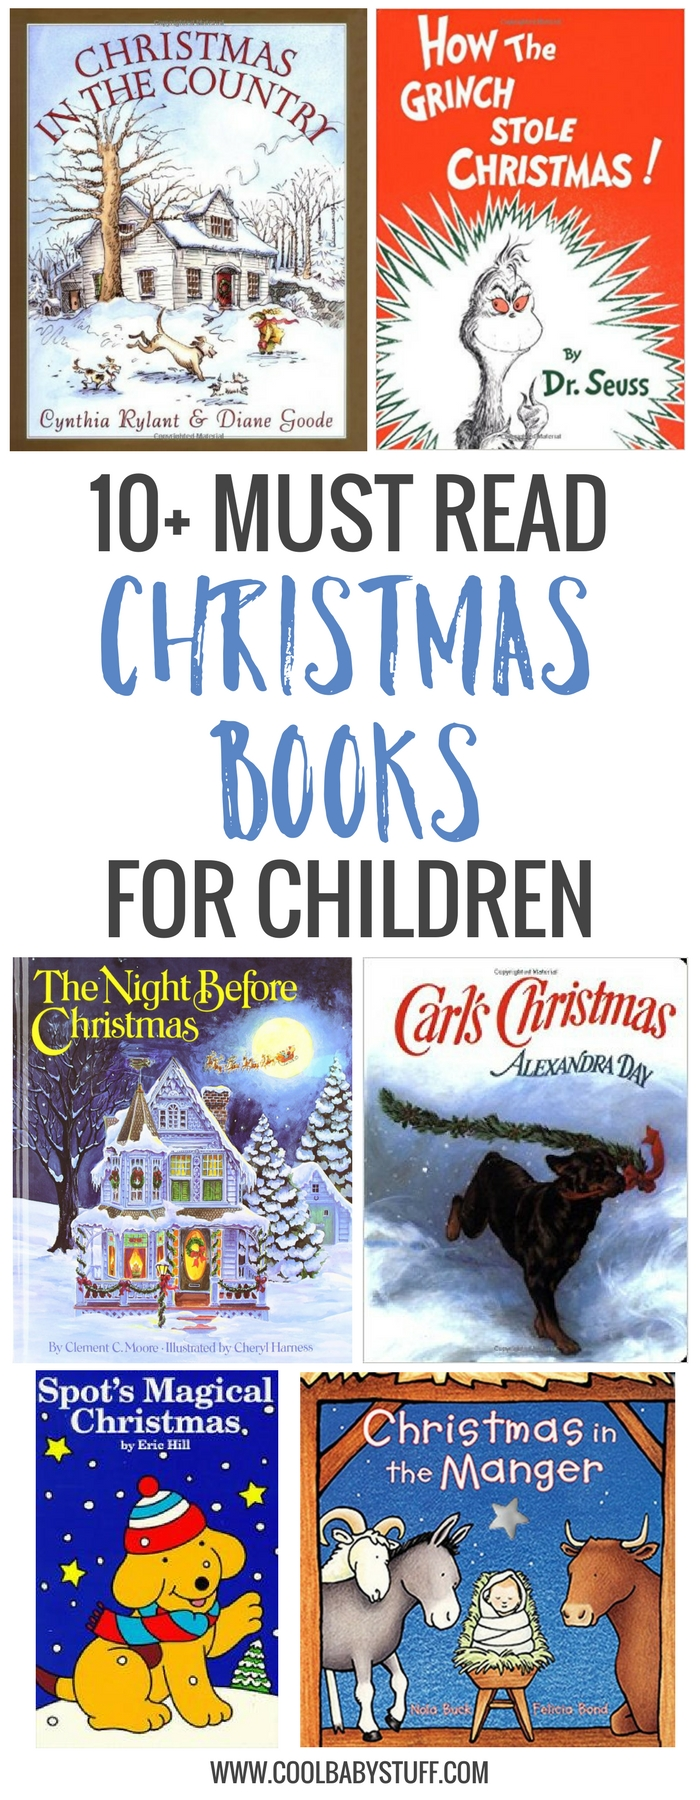 There are plenty of Christmas books for kids on the market, but here are several children's Christmas books we especially enjoyed.